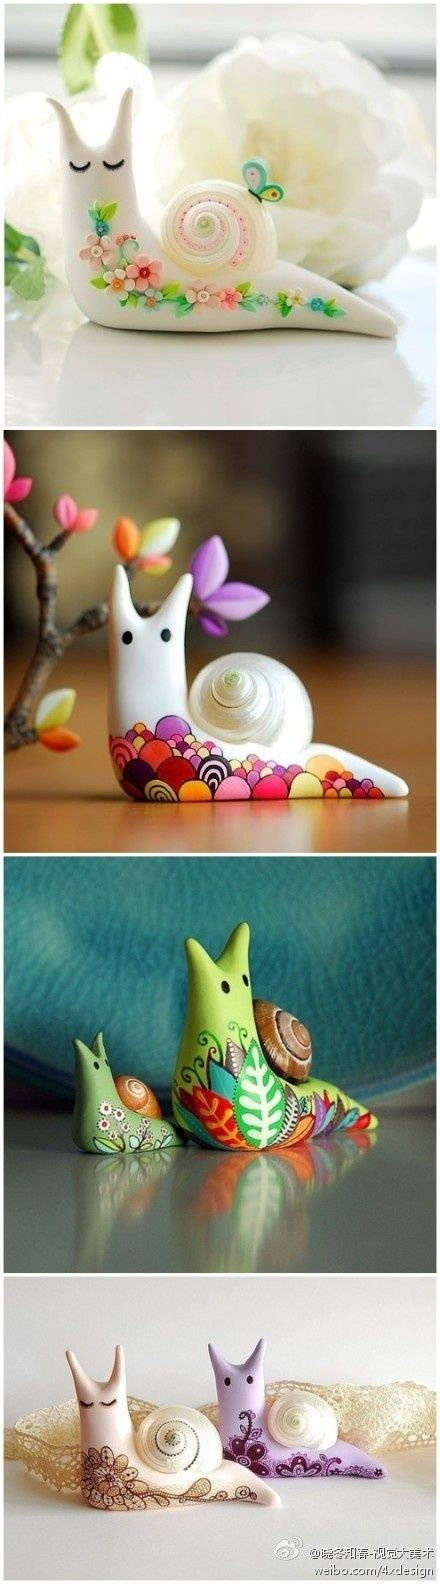 Painted snails. So cute! Some ideas are going through my head...Shells, Fimo and paint with different themes